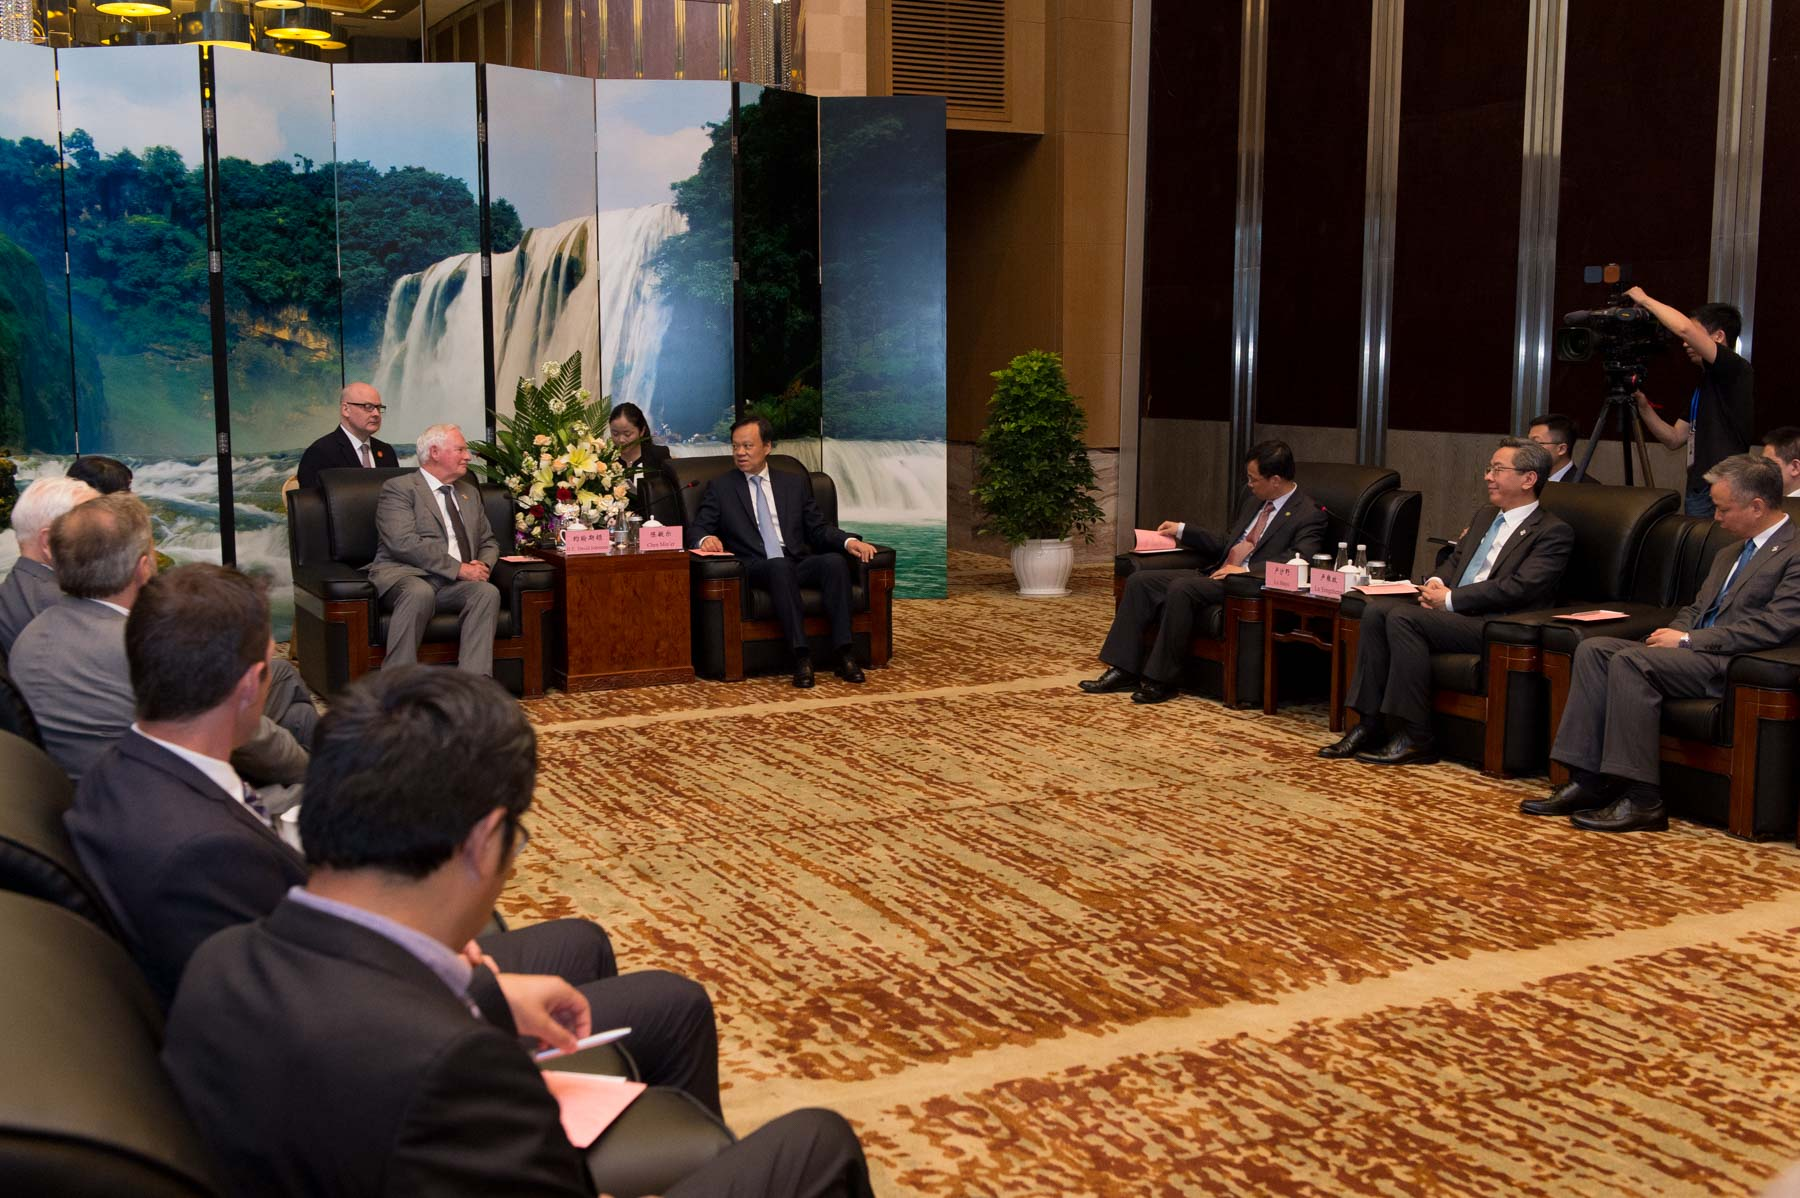 Members of the Canadian delegation and representatives of the Guizhou government joined them for the meeting.